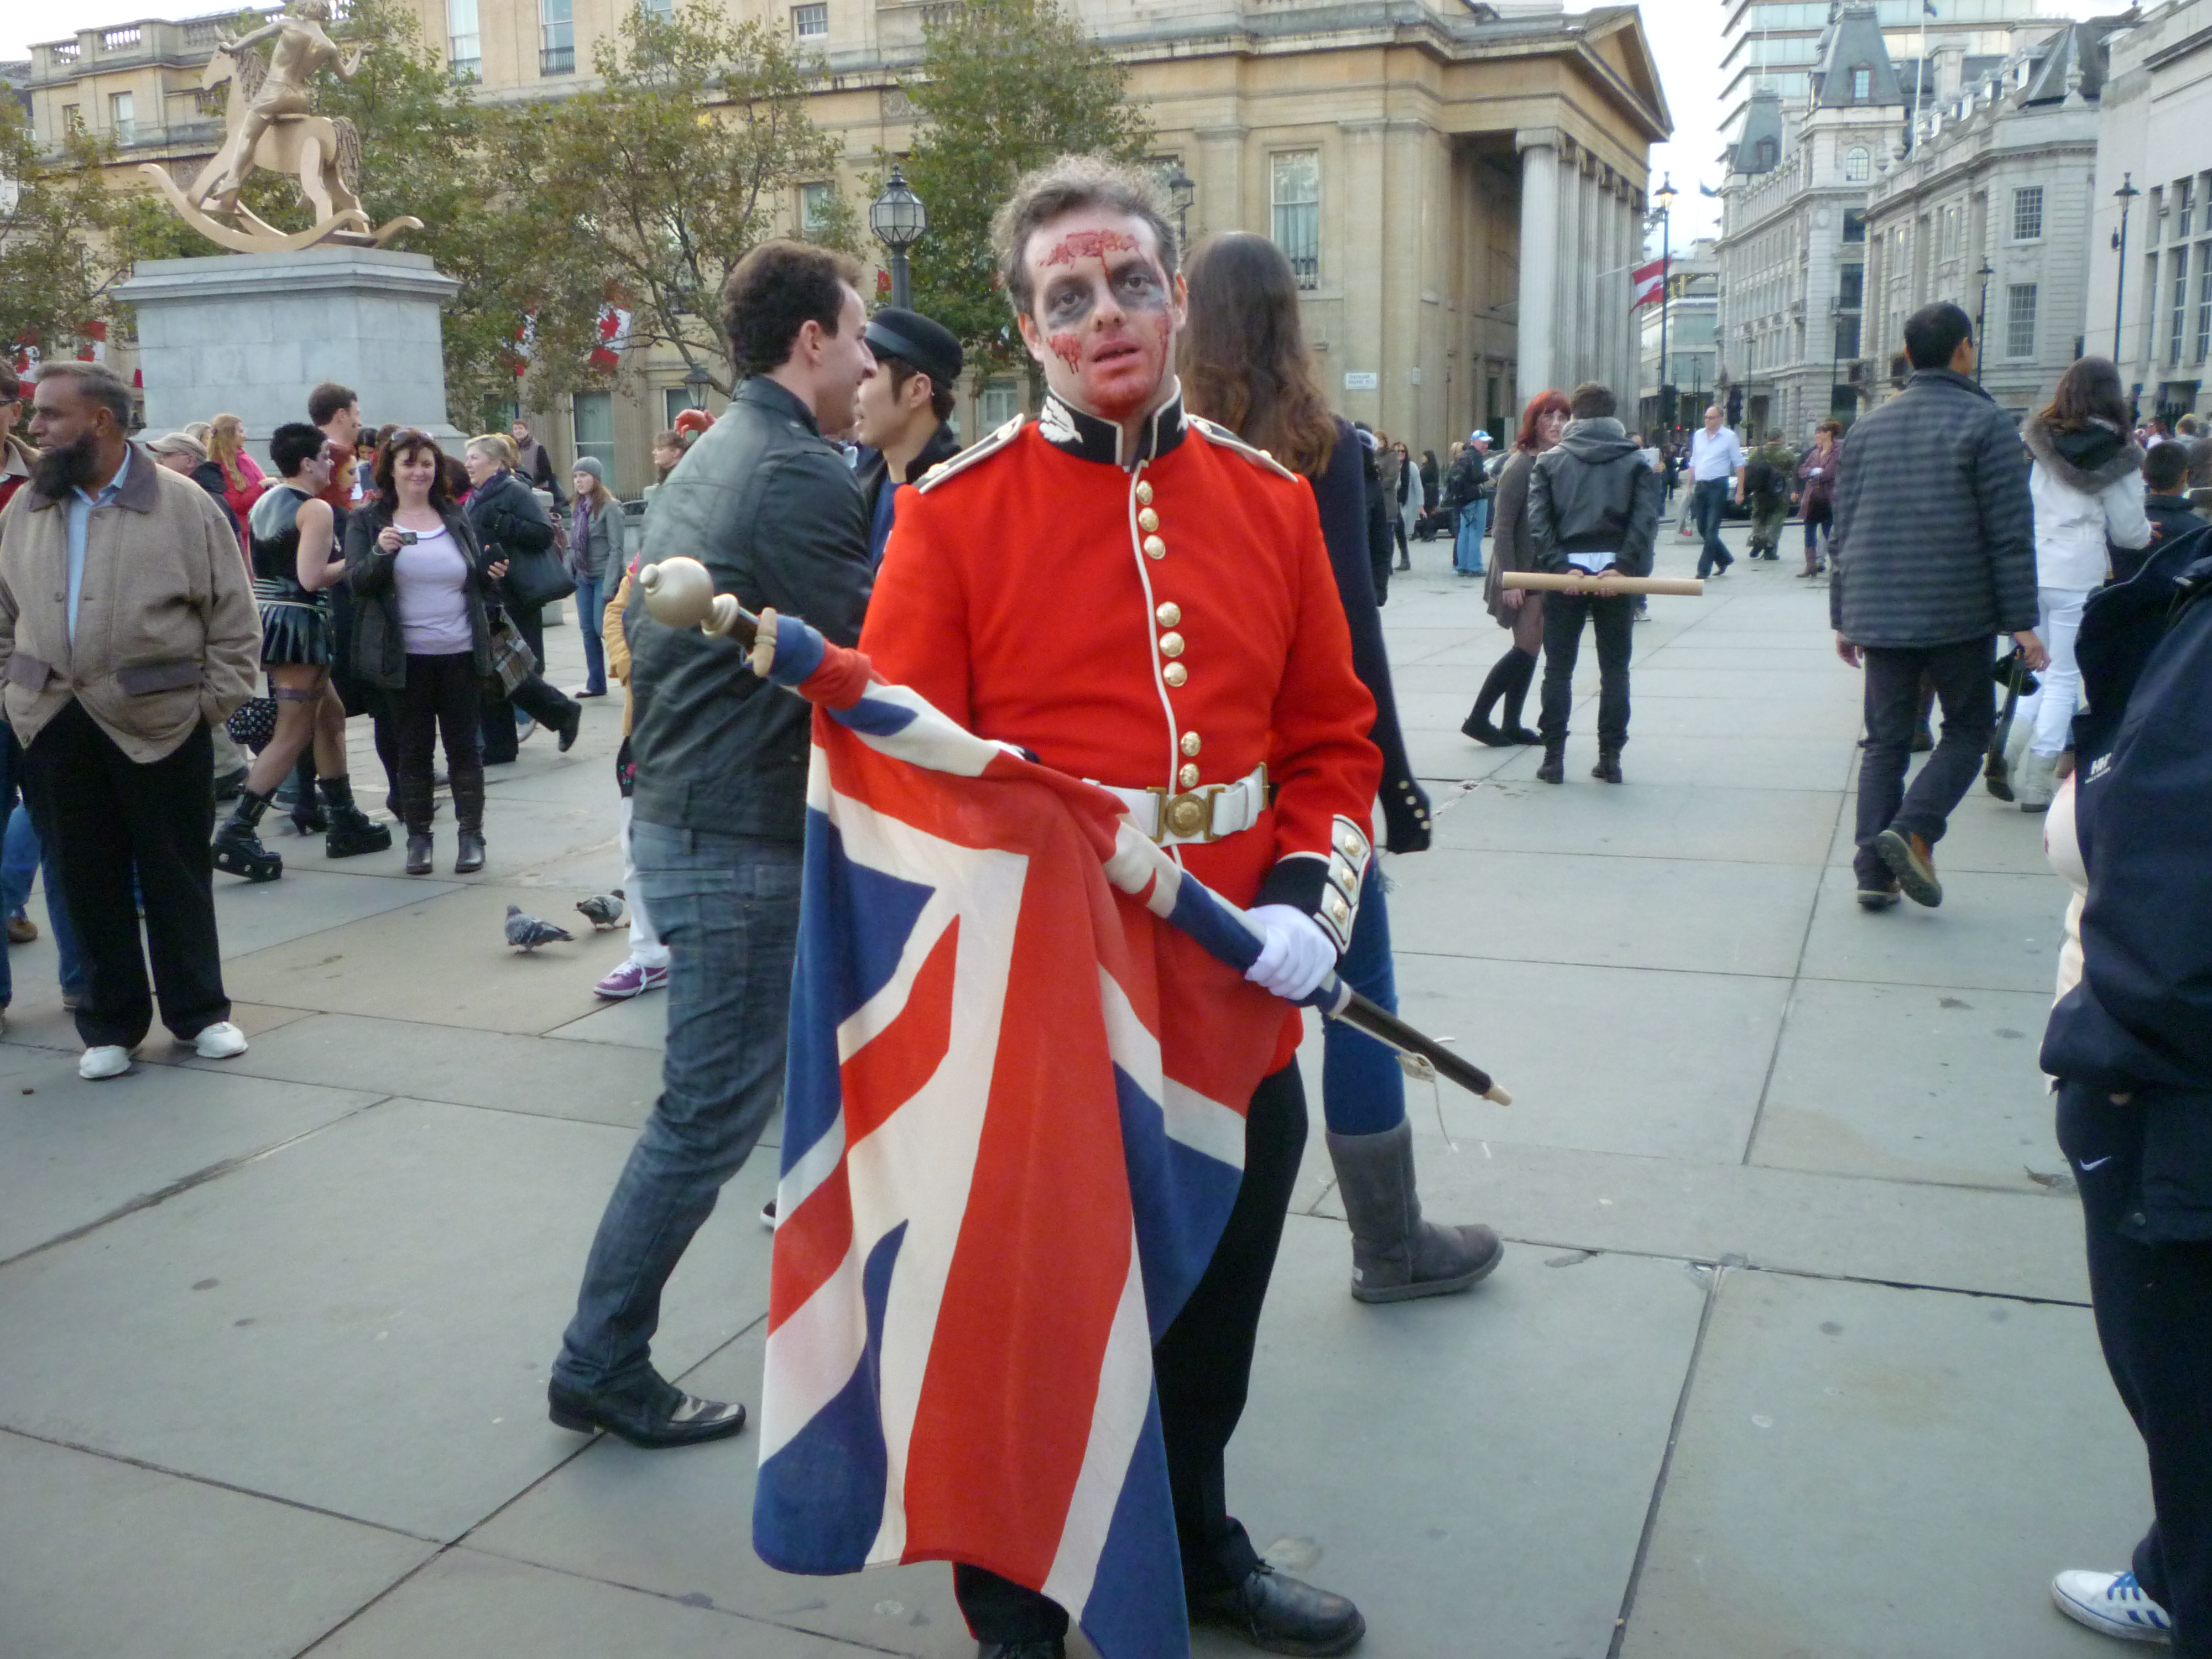 World Zombie Day in London - a figure from the past.